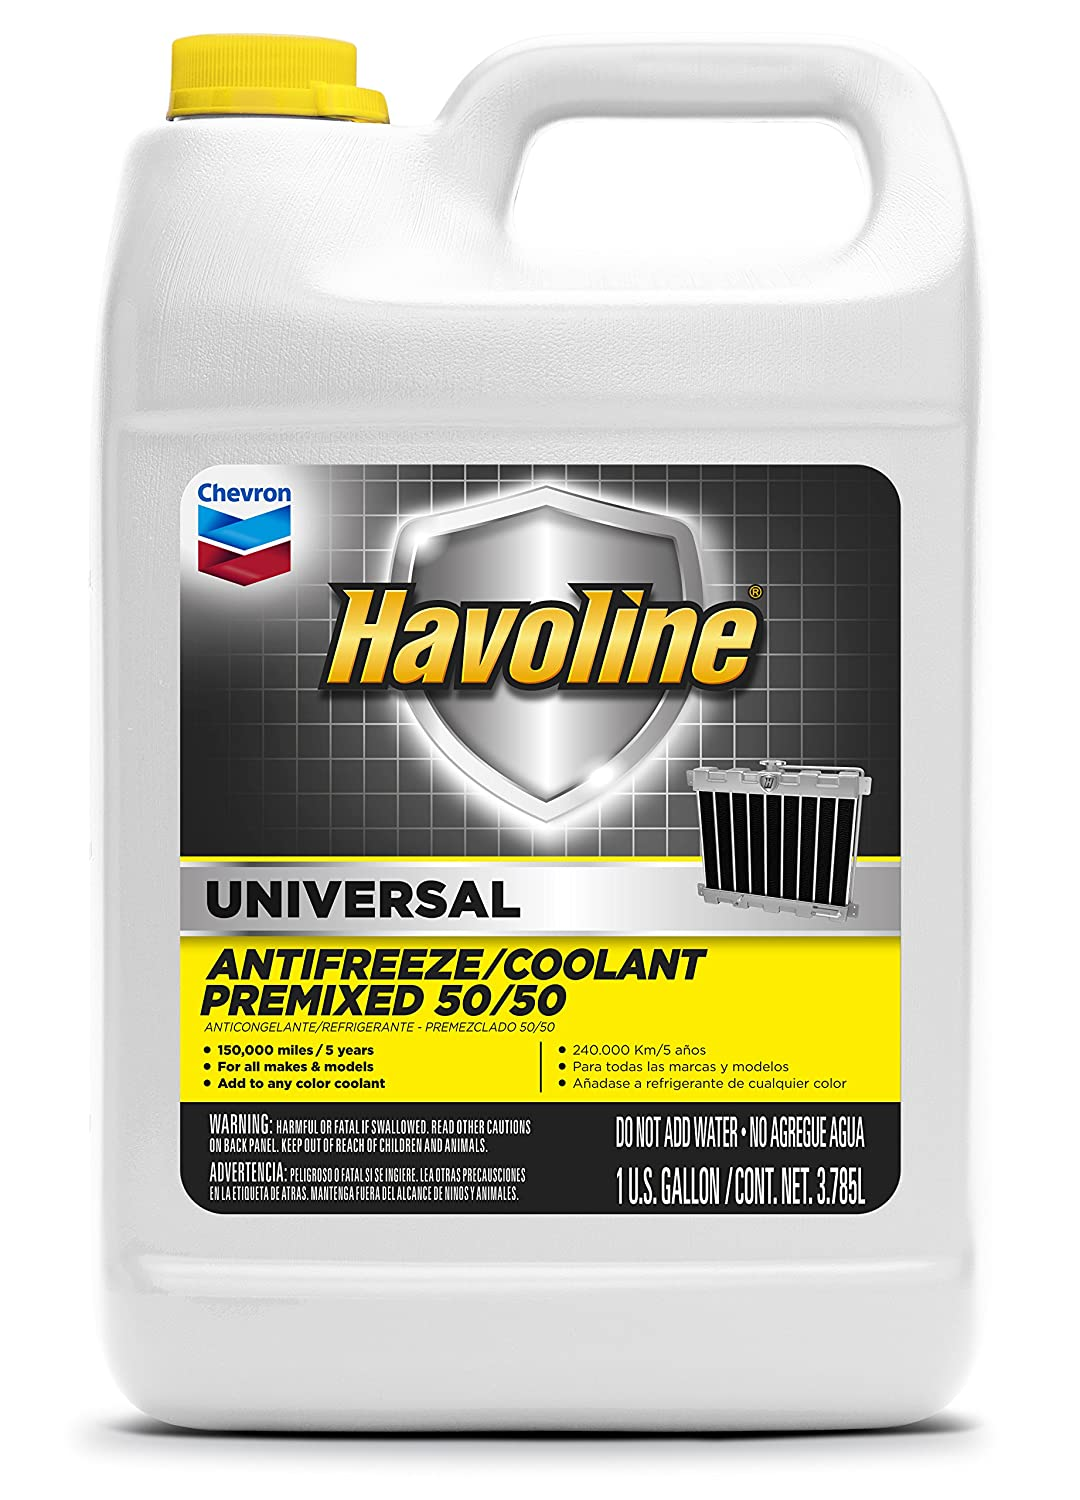 Amazon.com: HAVOLINE 227063486 Universal Prediluted 50/50 Antifreeze/Coolant-1  Gallon, (Pack of 6), 1. gallons, 6 Pack: Automotive